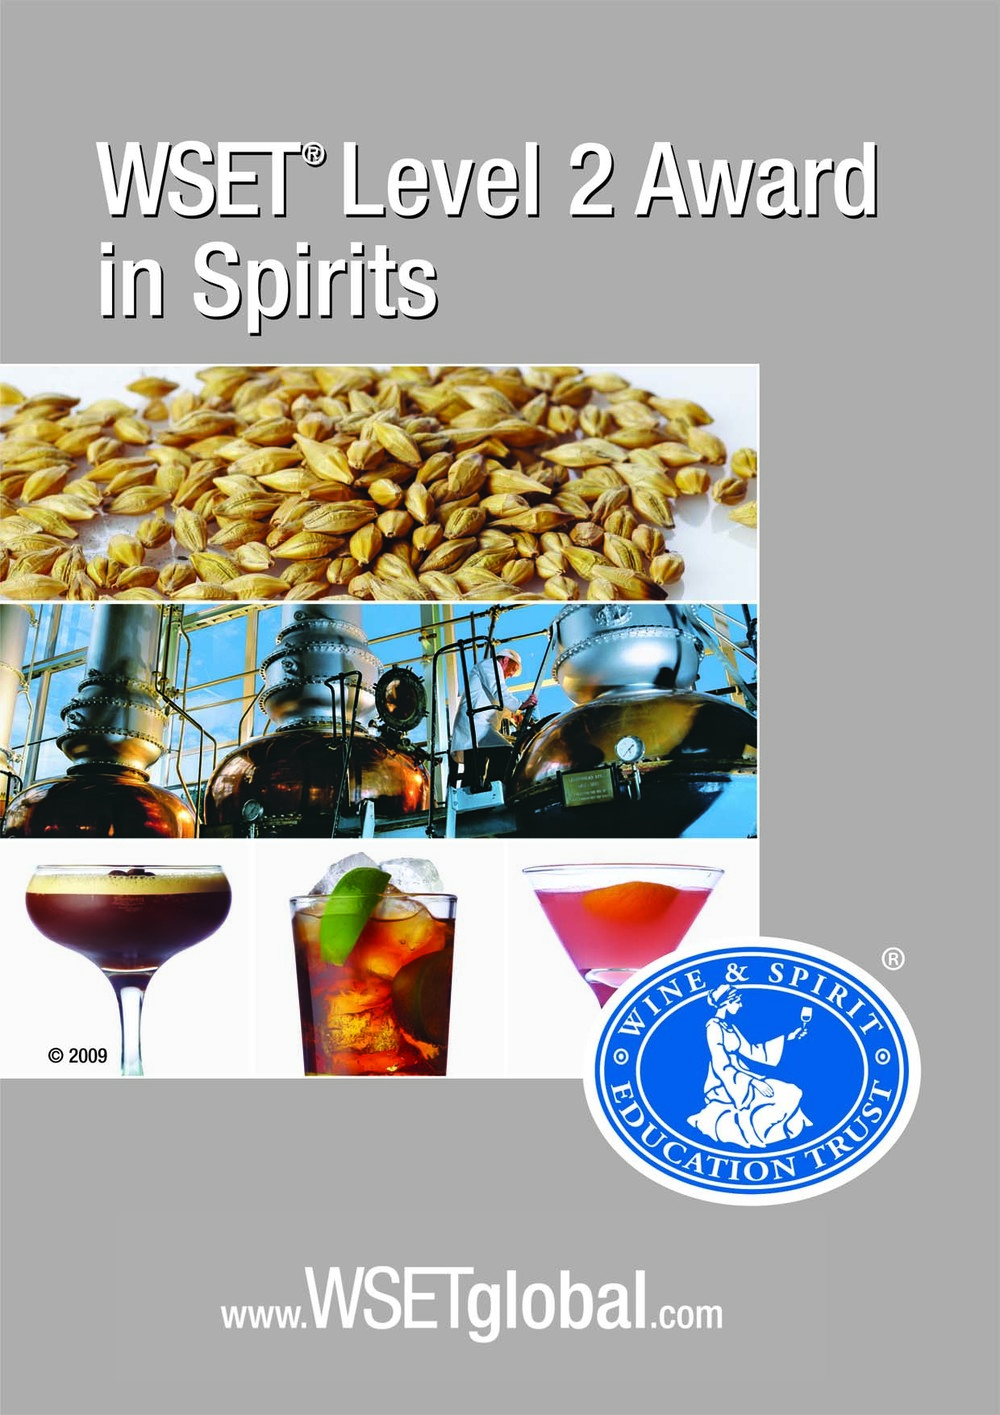 WSET Level 2 Award in Spirits